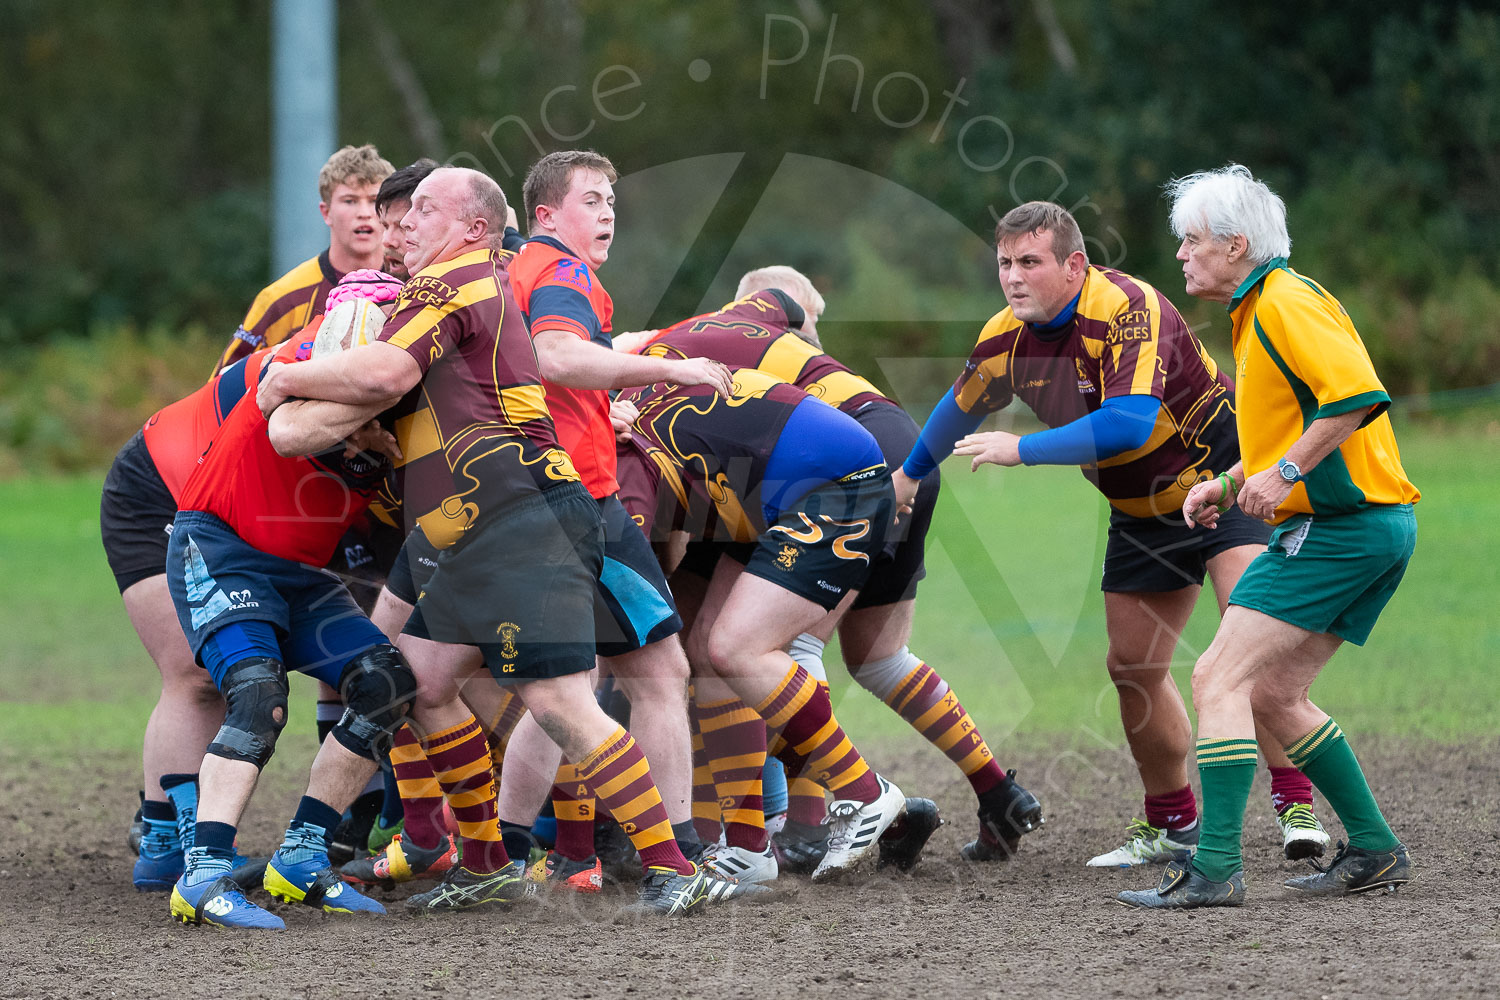 20181027 Amp Extras vs St Neots 2nd XV #2162